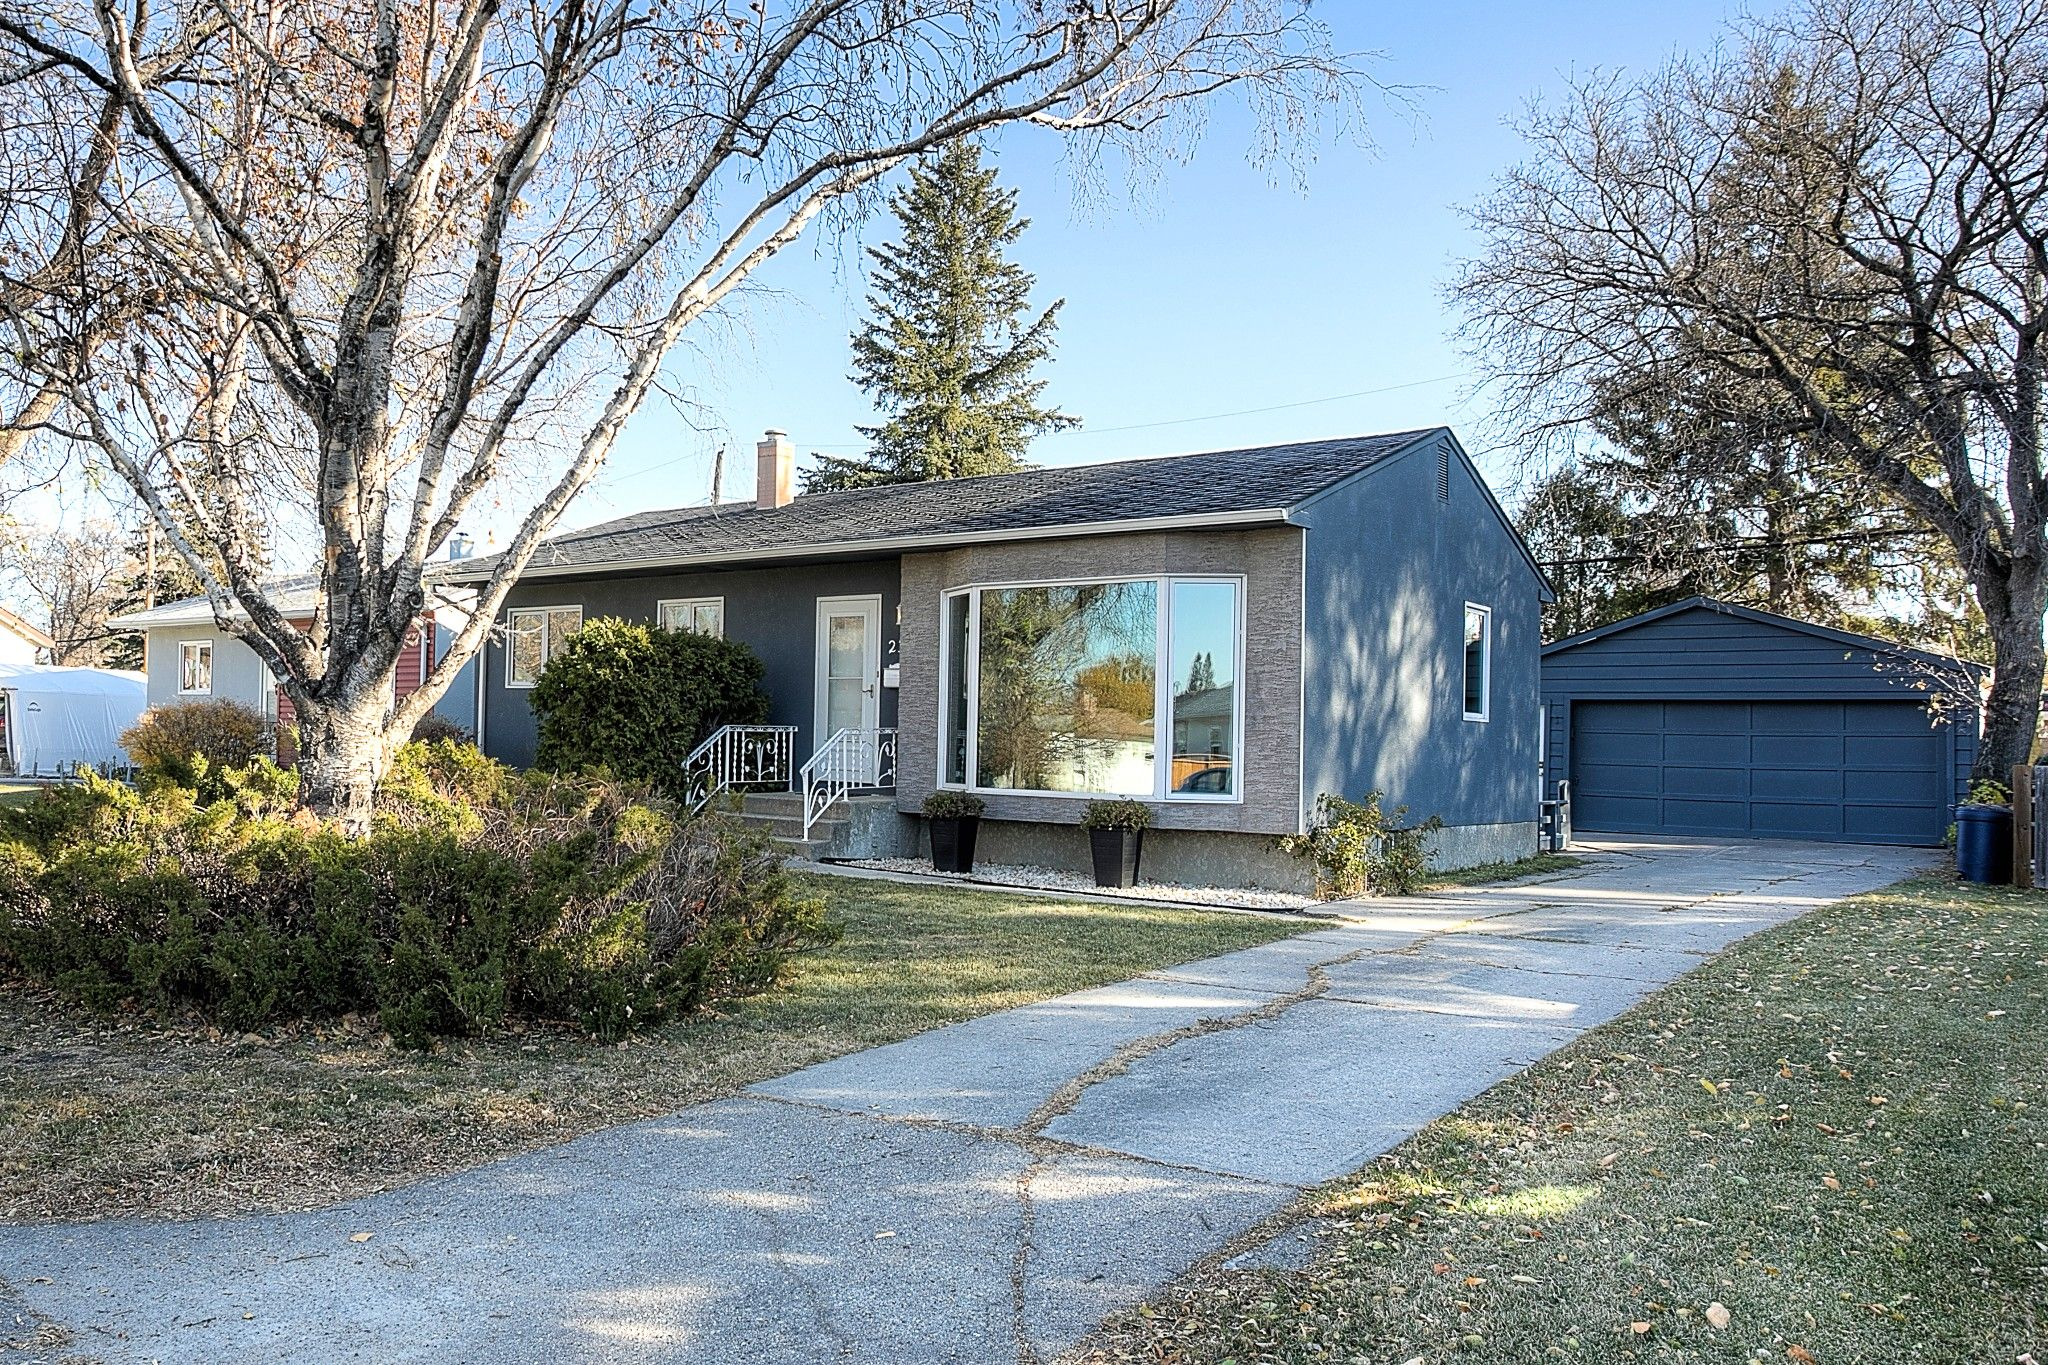 Main Photo: 23 Almond Bay in Winnipeg: Windsor Park Single Family Detached for sale (2G)  : MLS®# 202026329